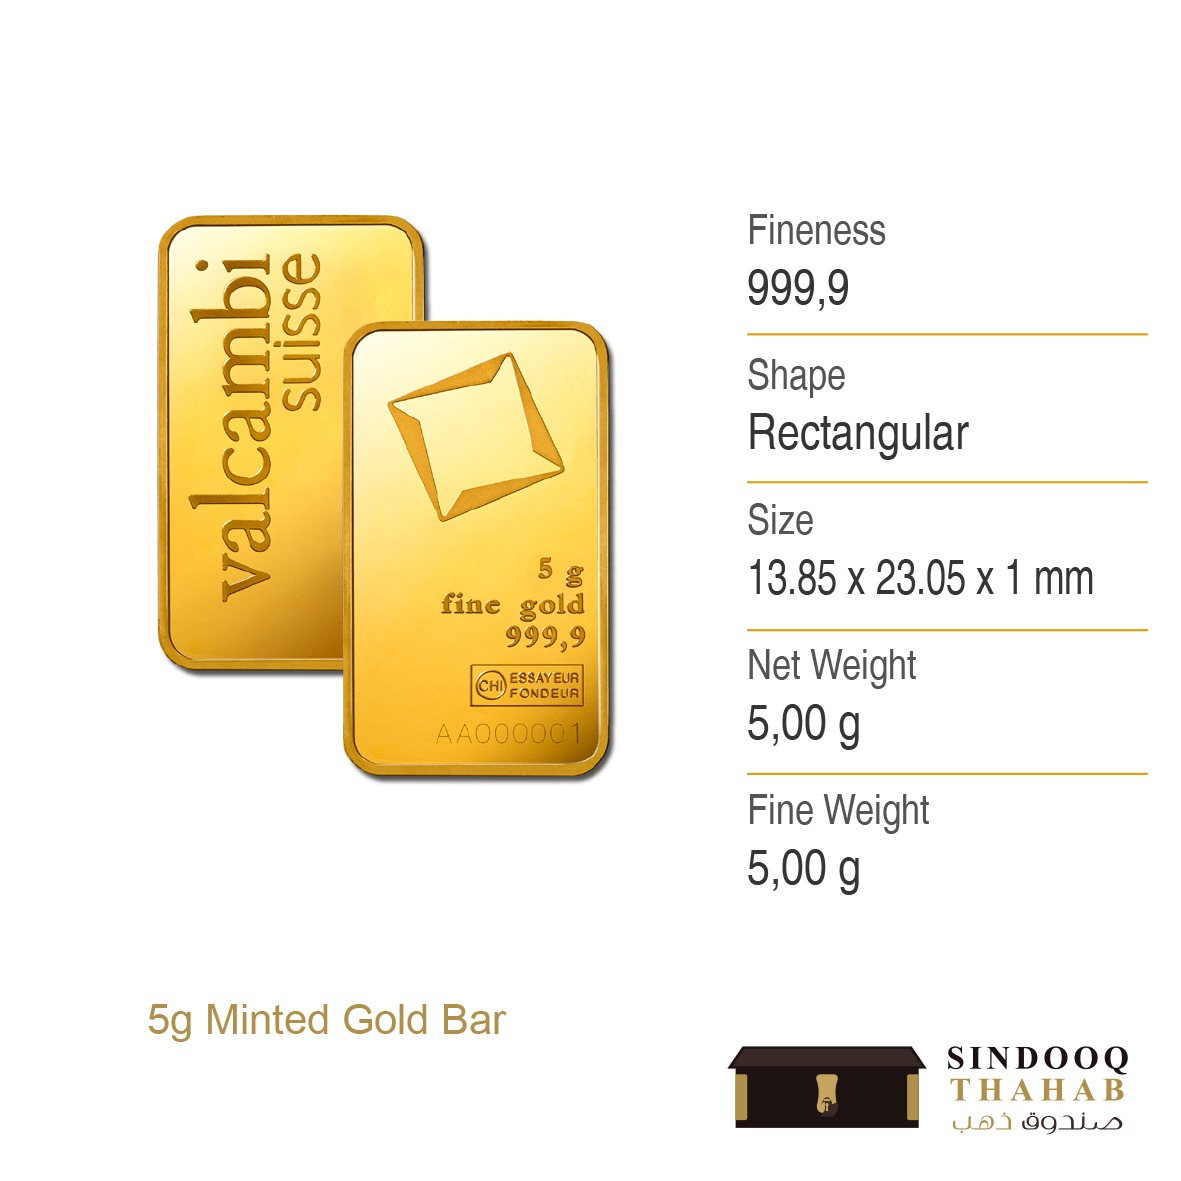 5g Minted Gold Bar